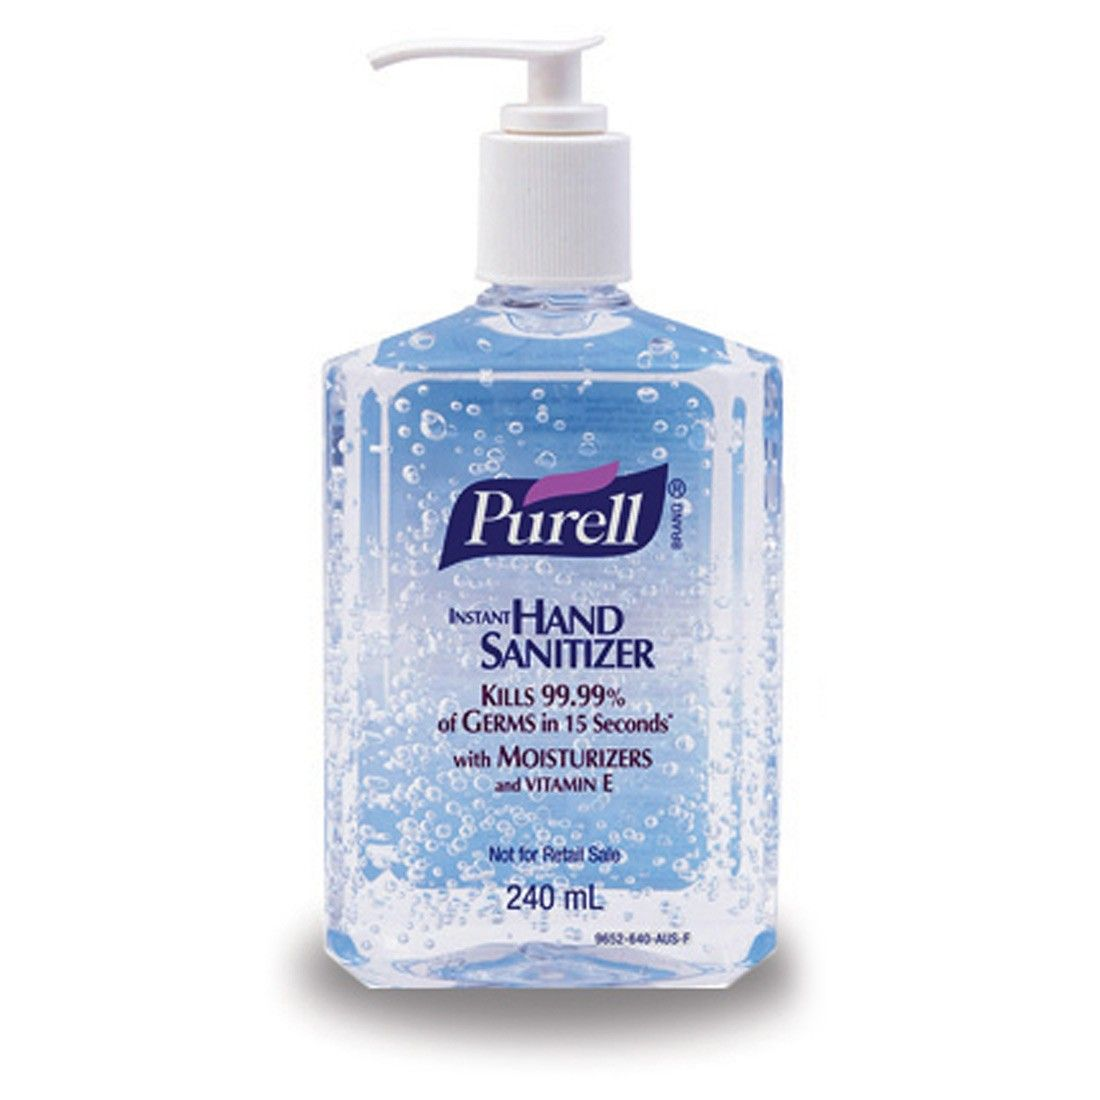 Pin By Killinitwithcoupons On Coupon Blog Deals Hand Sanitizer